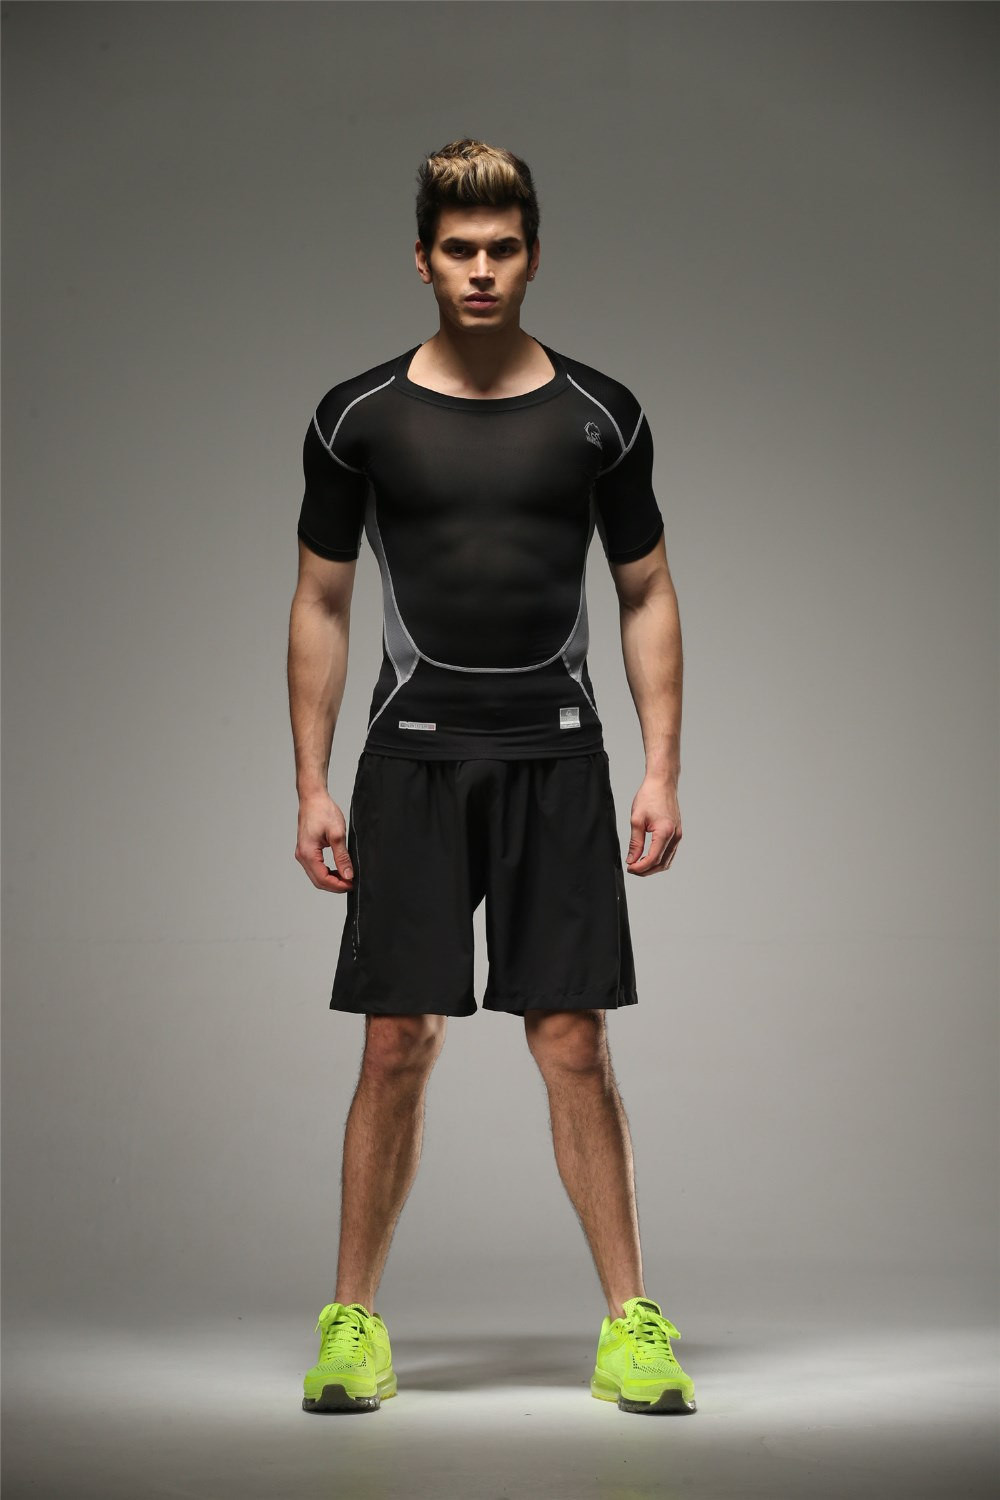 oem cheap wholesale gym wearmen sport gym clothing  buy